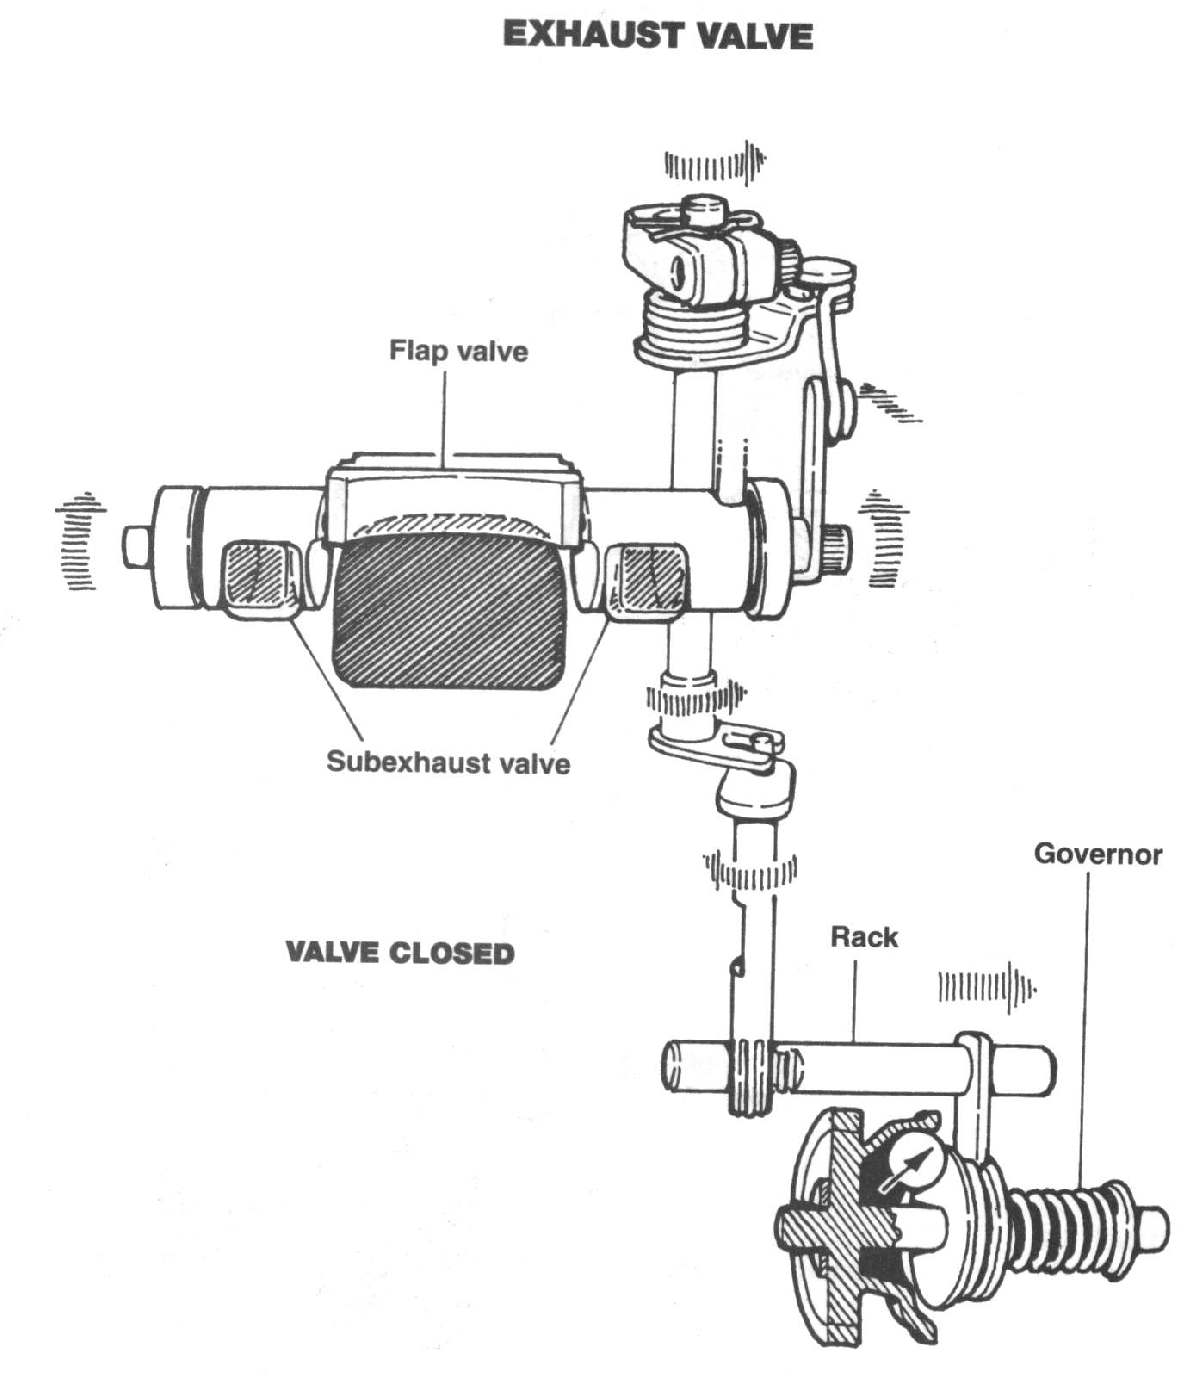 Dans Motorcycle Power Valves 2002 Yamaha Yz 125 Wiring Diagram Valve Closed